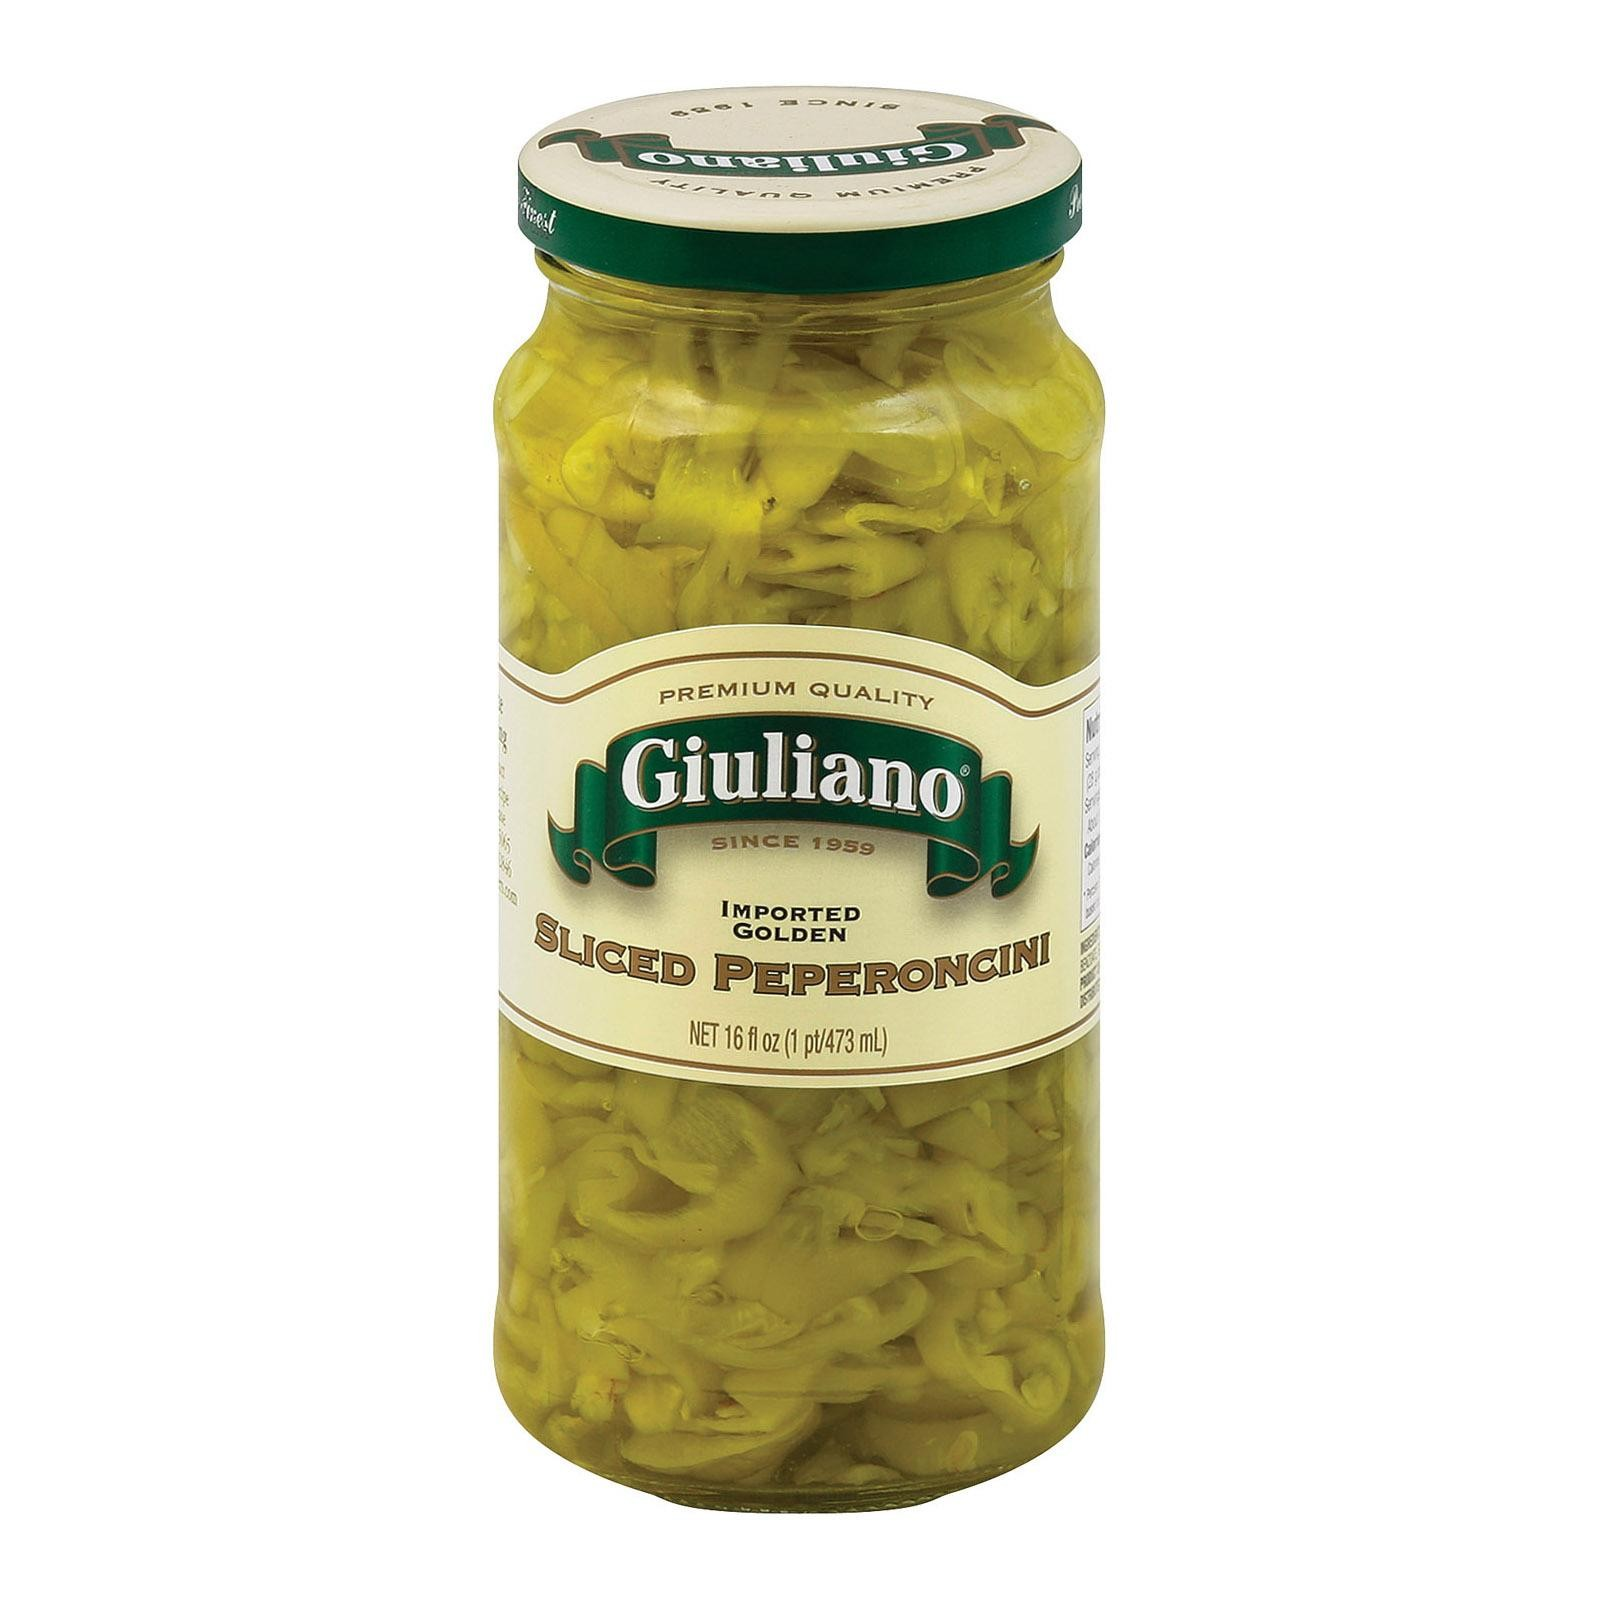 Giuliano's Sliced Pepperoncini - Greek Golden - Pack of 6 - 16 Oz.